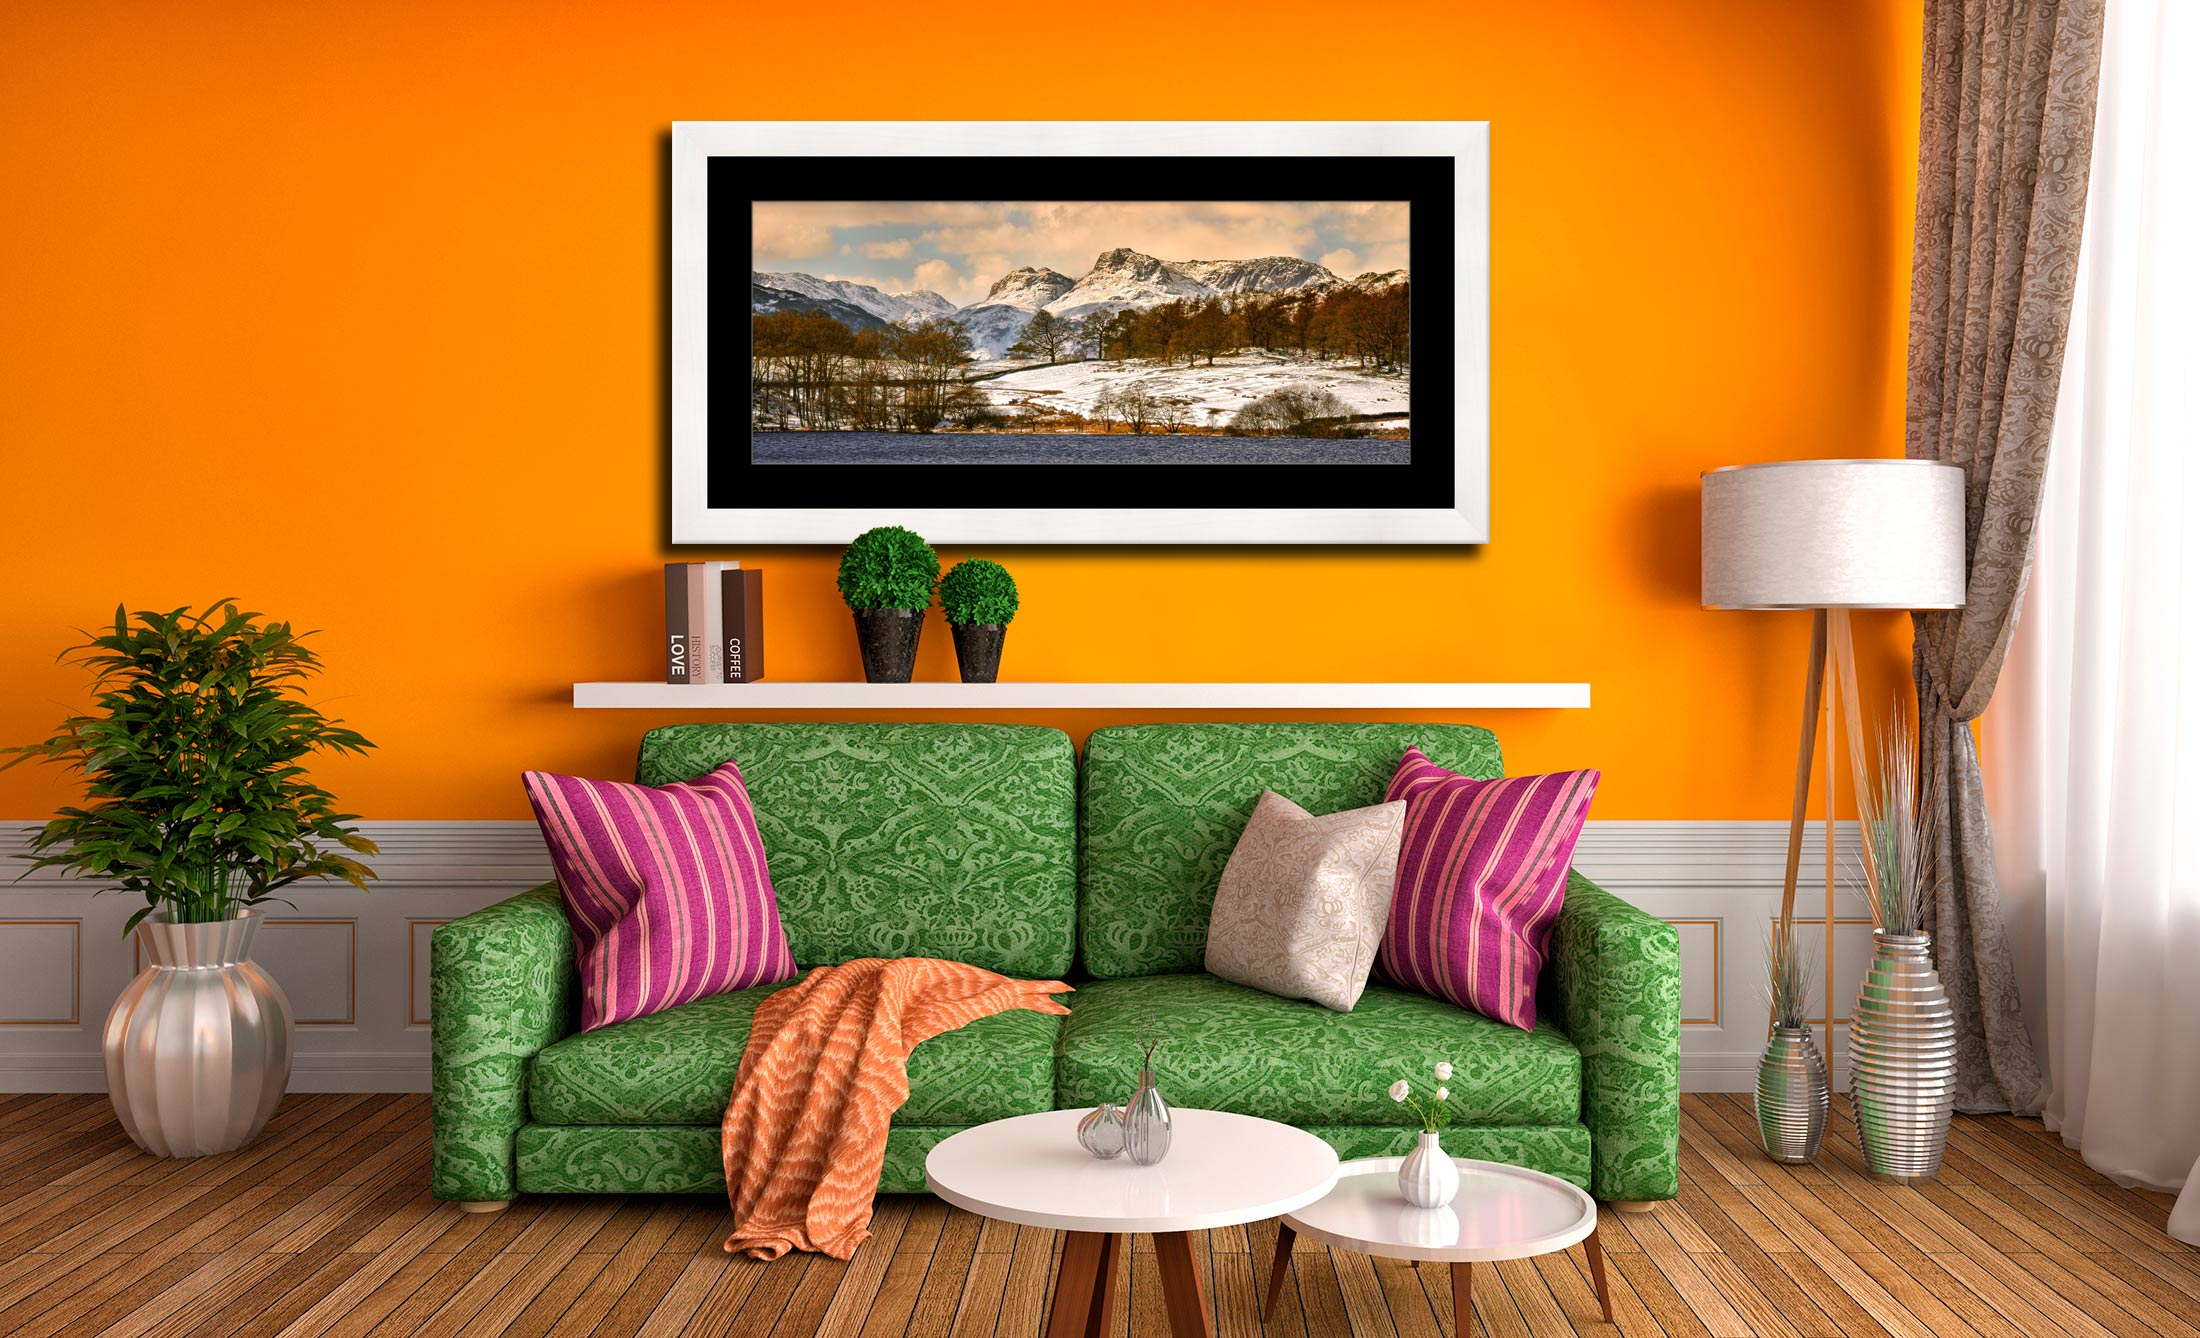 Loughrigg Tarn Winter View - Framed Print with Mount on Wall